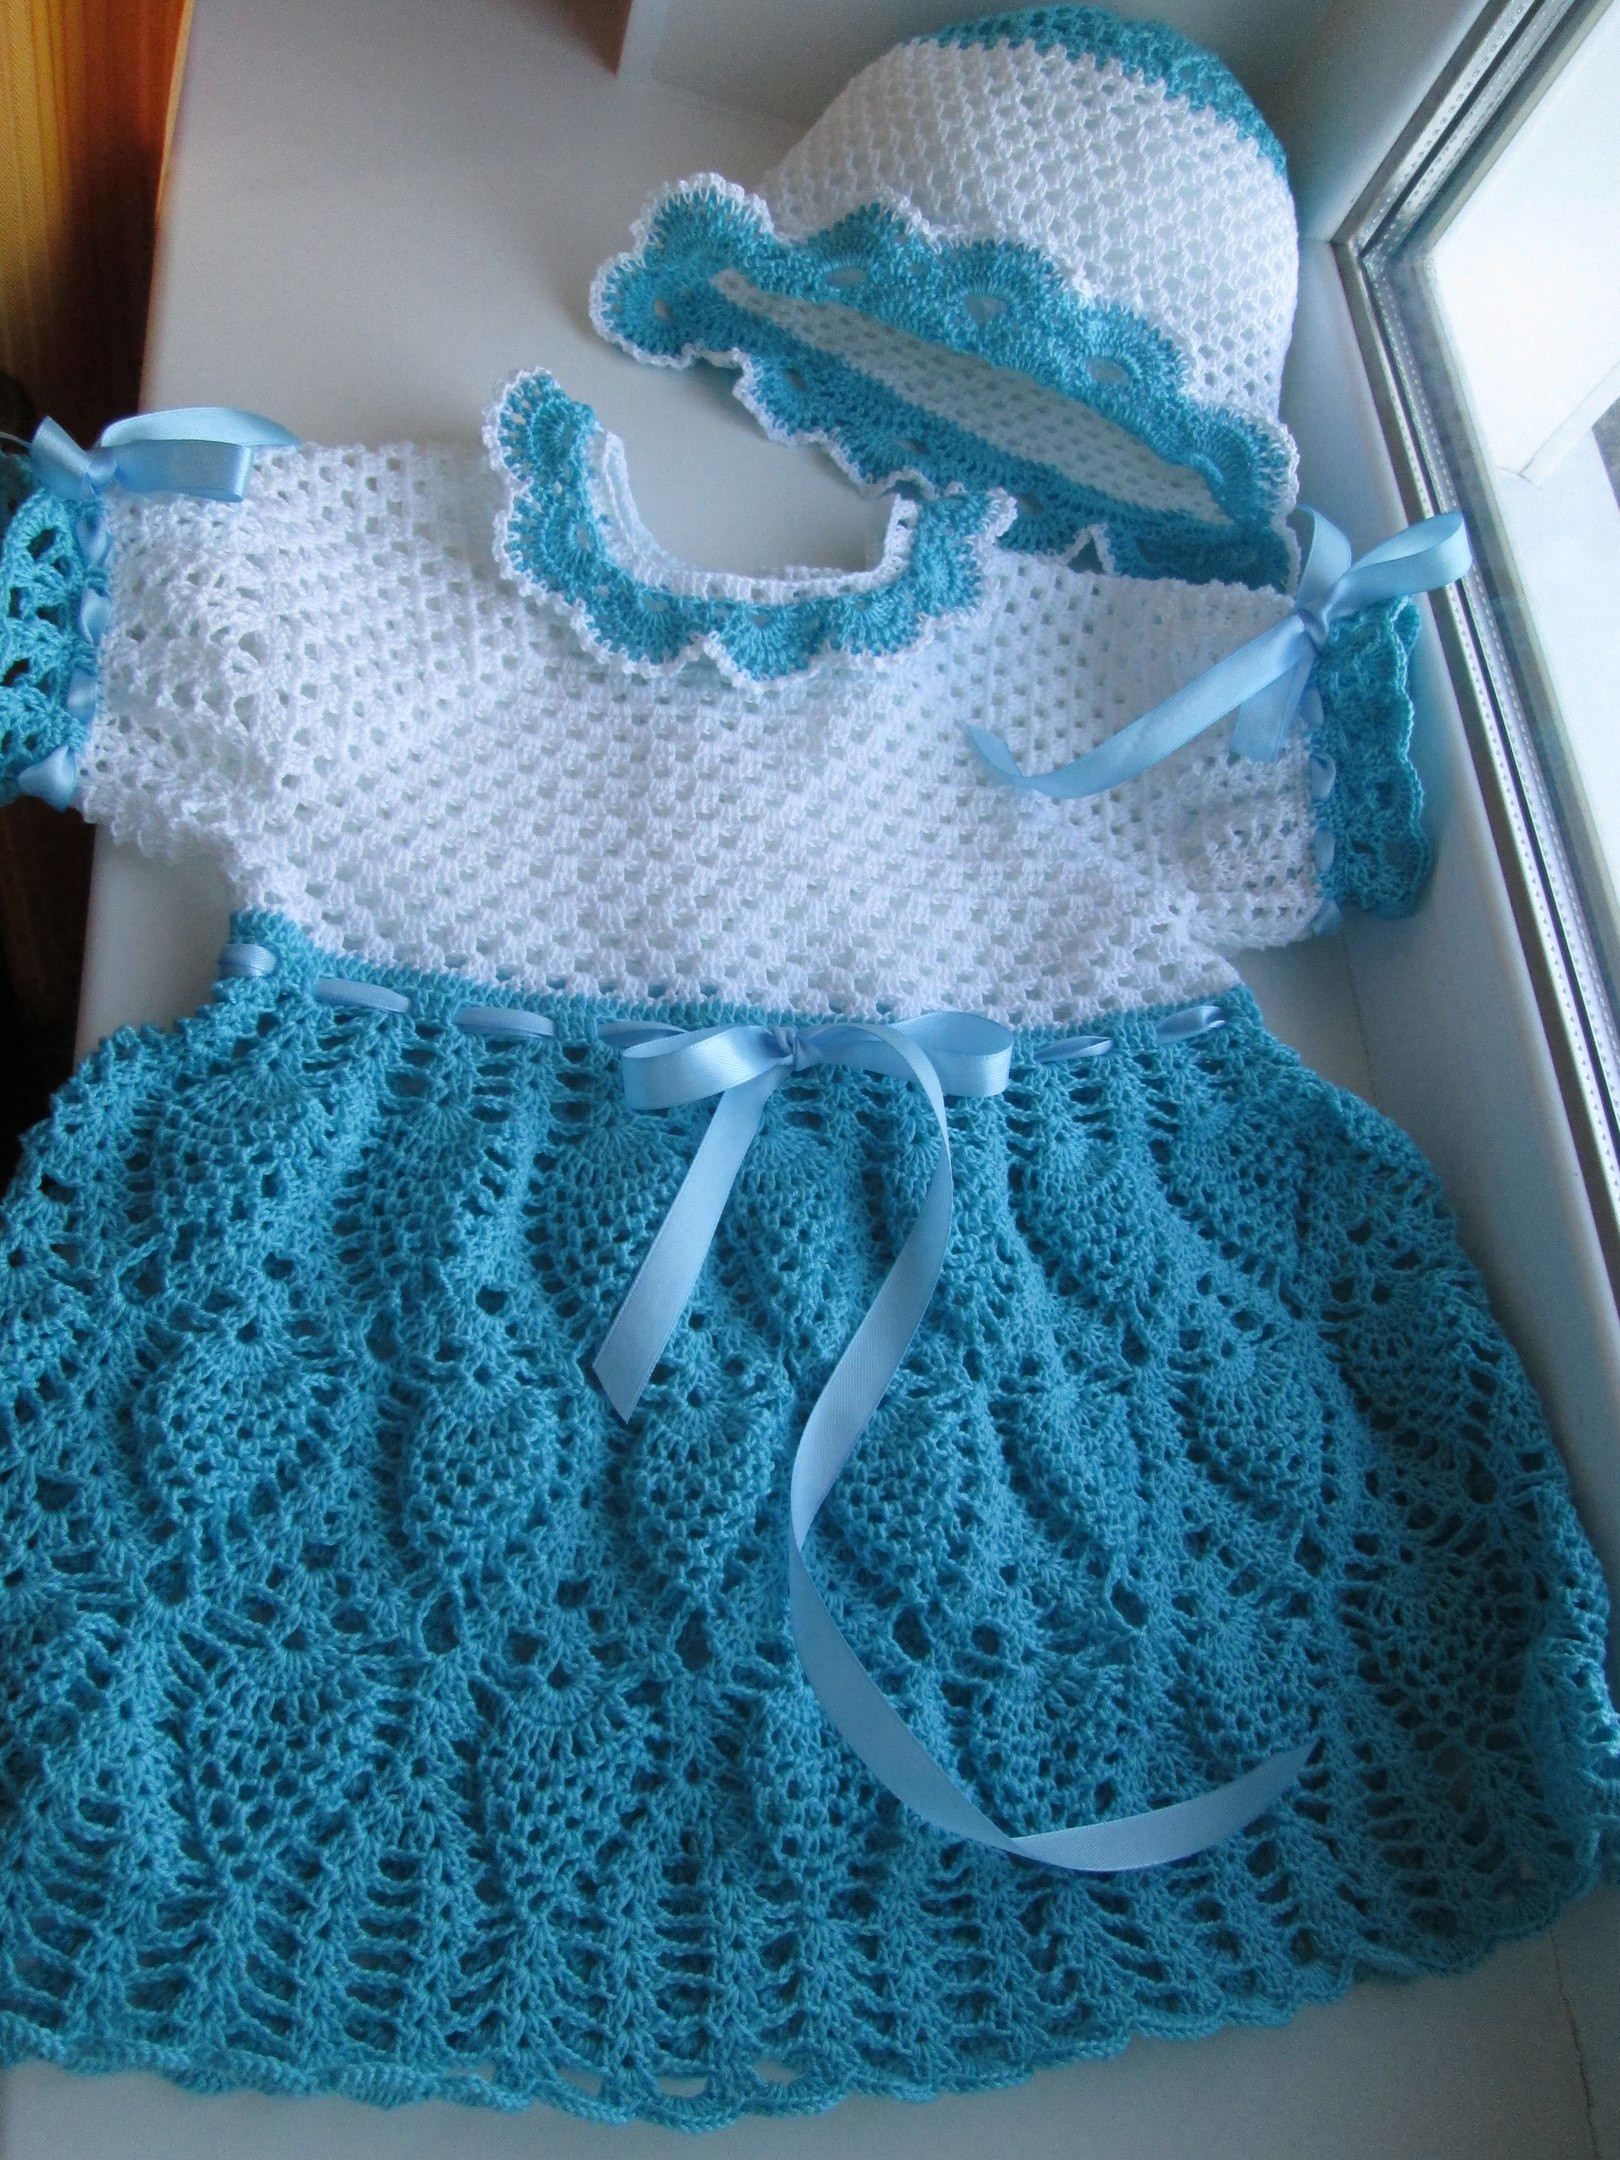 Crochet Baby Dress Patterns Inspirational Crochet Baby Clothes Of Awesome 42 Models Crochet Baby Dress Patterns